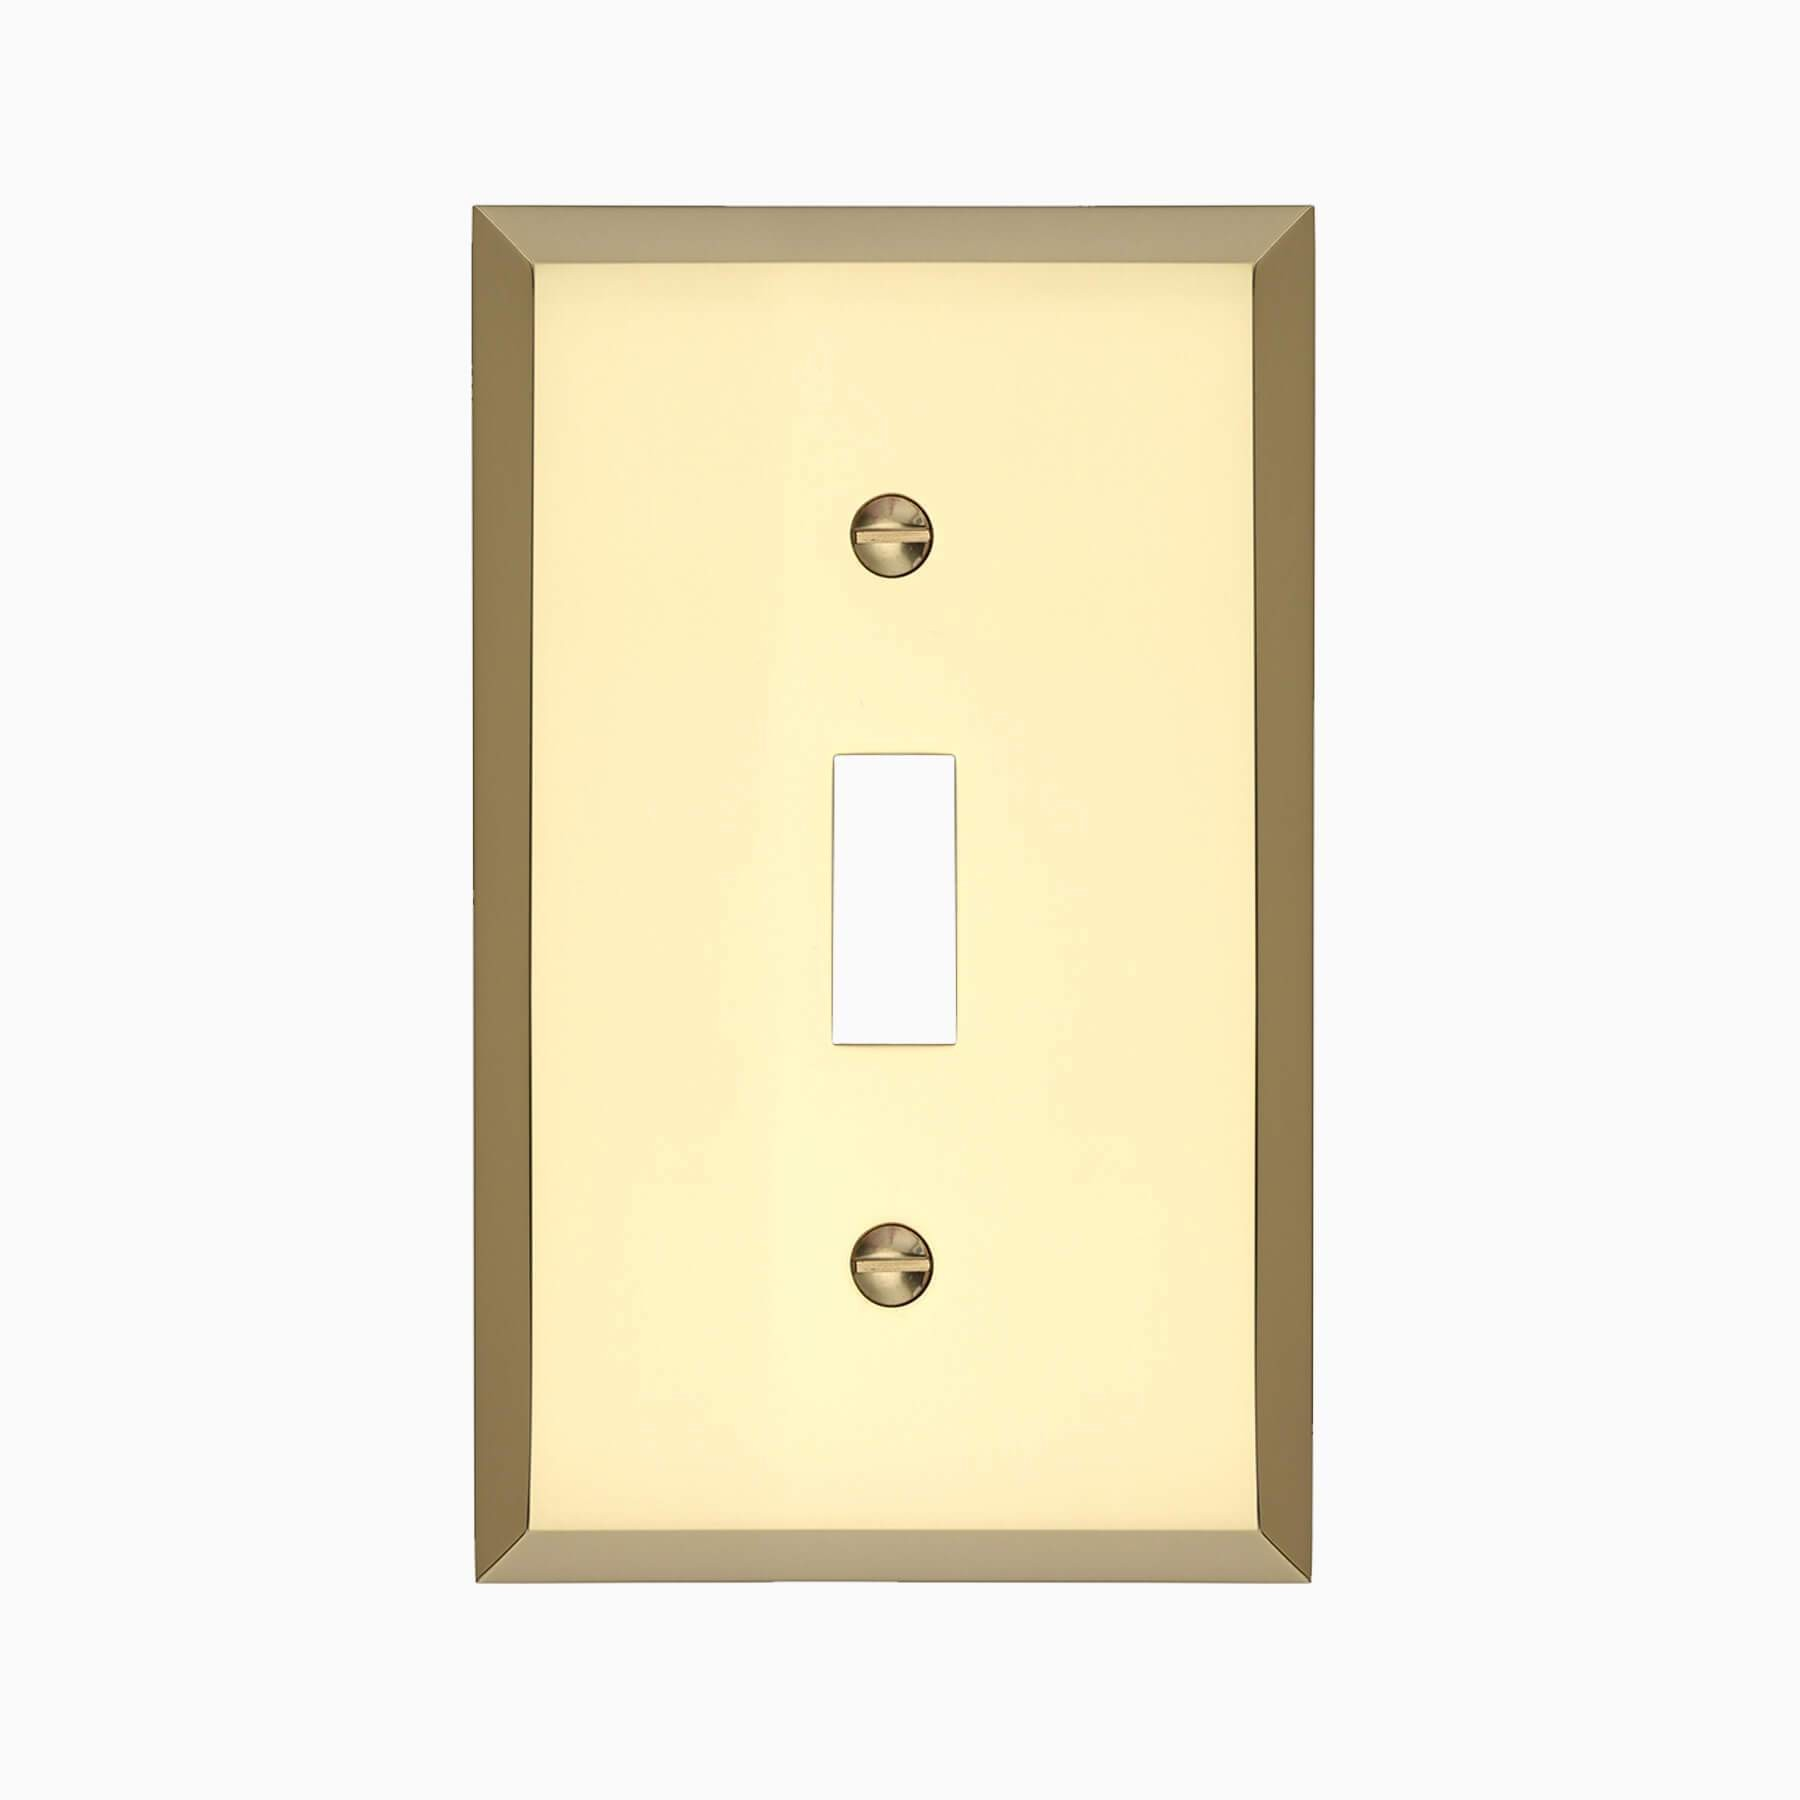 Graham Single Light Switch Cover Polished Brass Wall Mounted Electrical Switch Plate